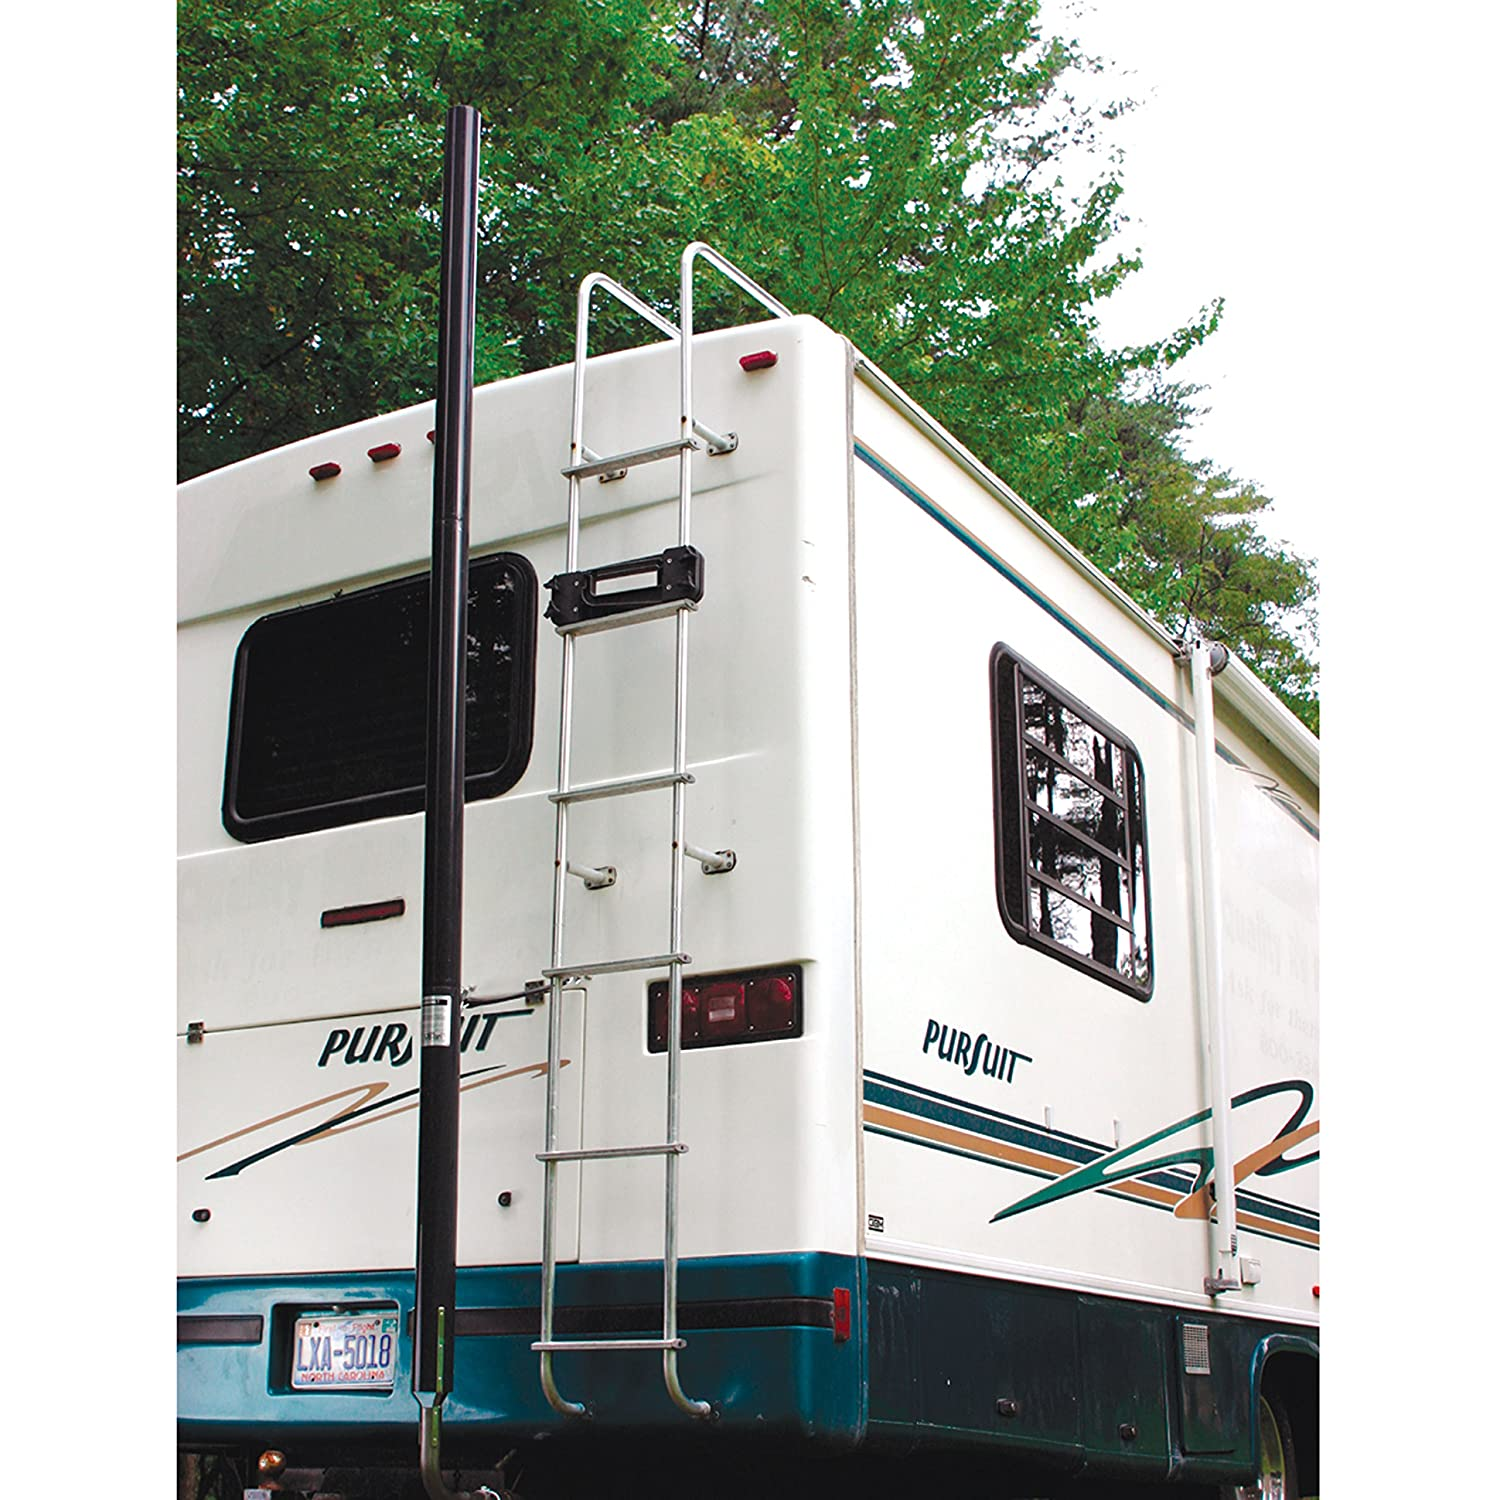 Camco Gen Turi Rv Generator Exhaust Venting System Open Roads Forum Can My Garage Dryer Outlet Be Used To Power Mh Reduce Fumes And Noise Easy Install Disconnect 44461 Automotive